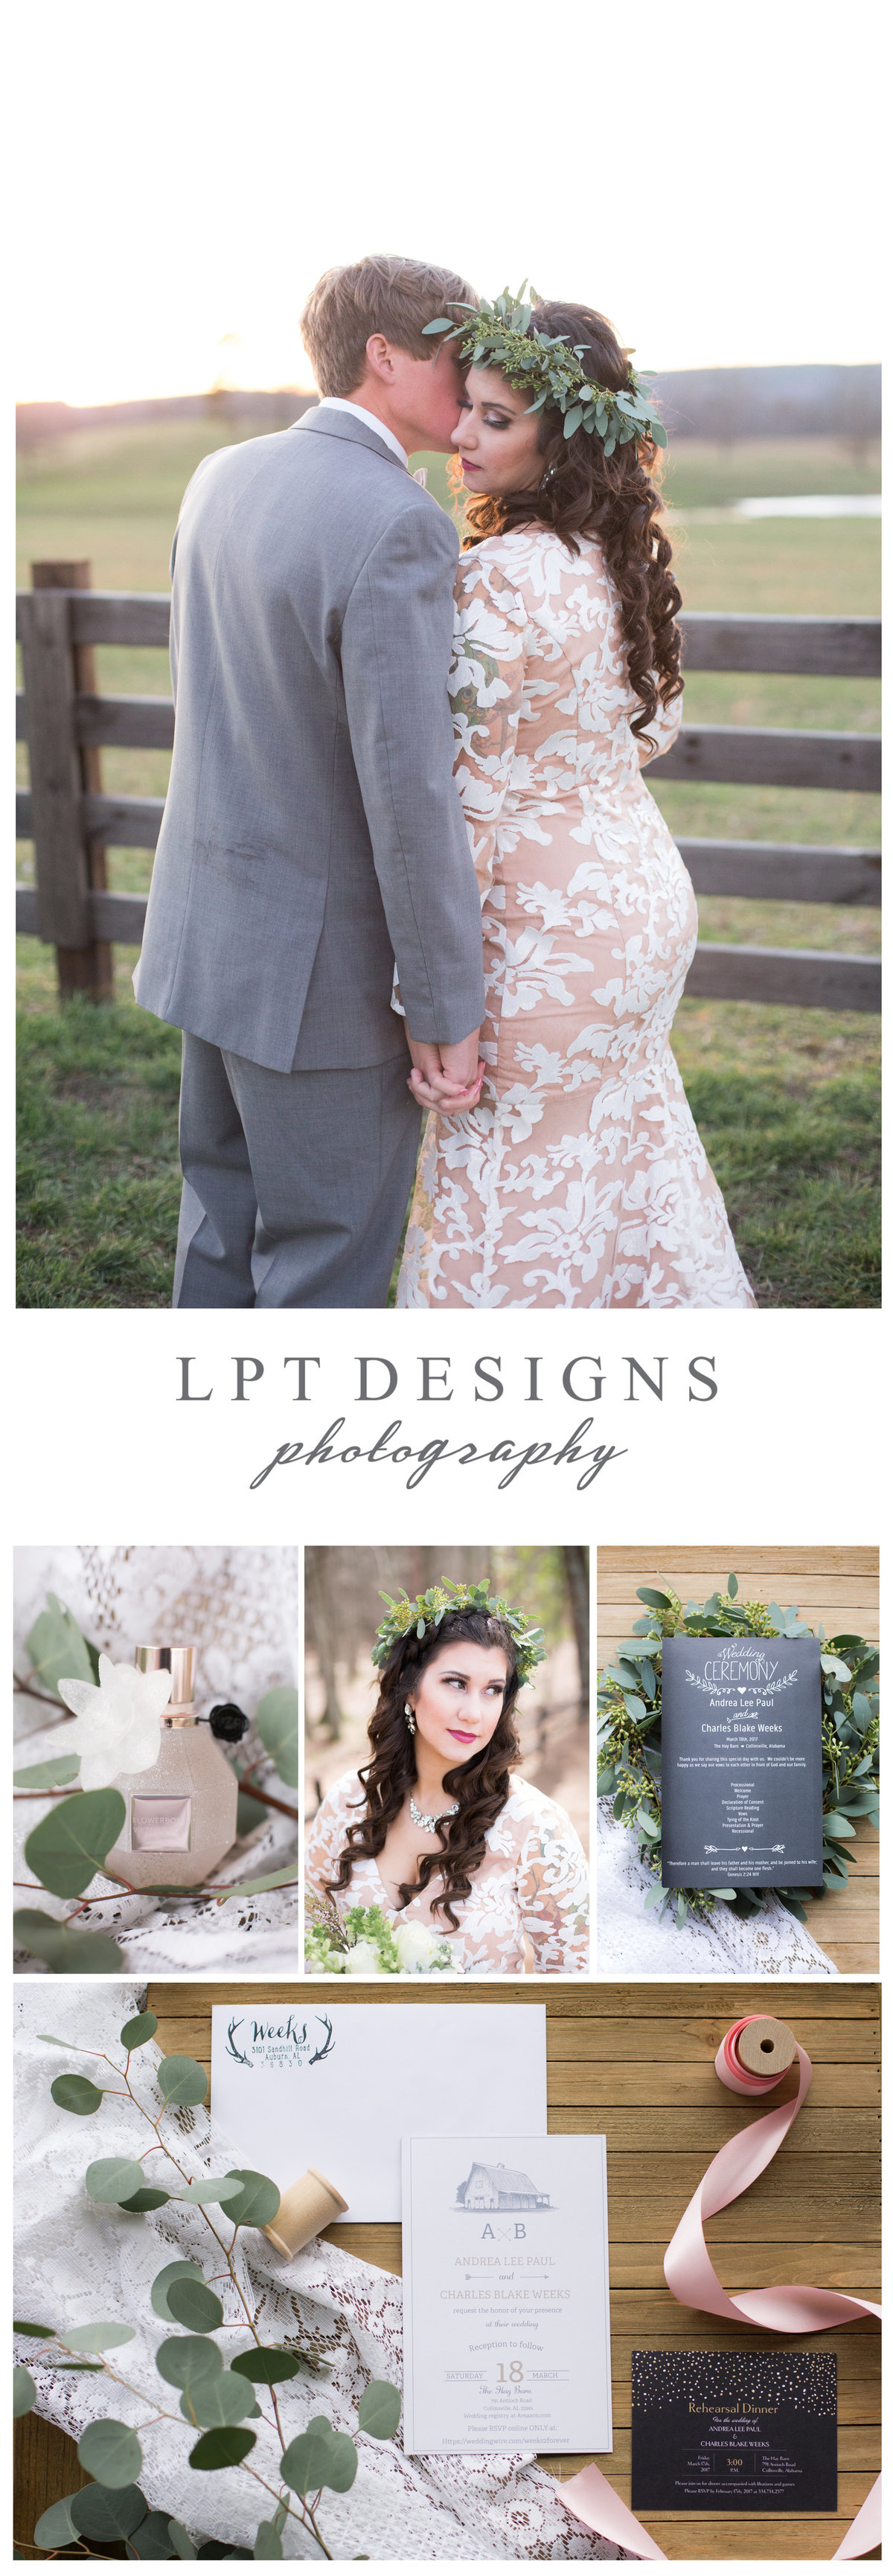 LPT Designs Photography Lydia Thrift Gadsden Alabama Fine Art Wedding Photographer AB 1